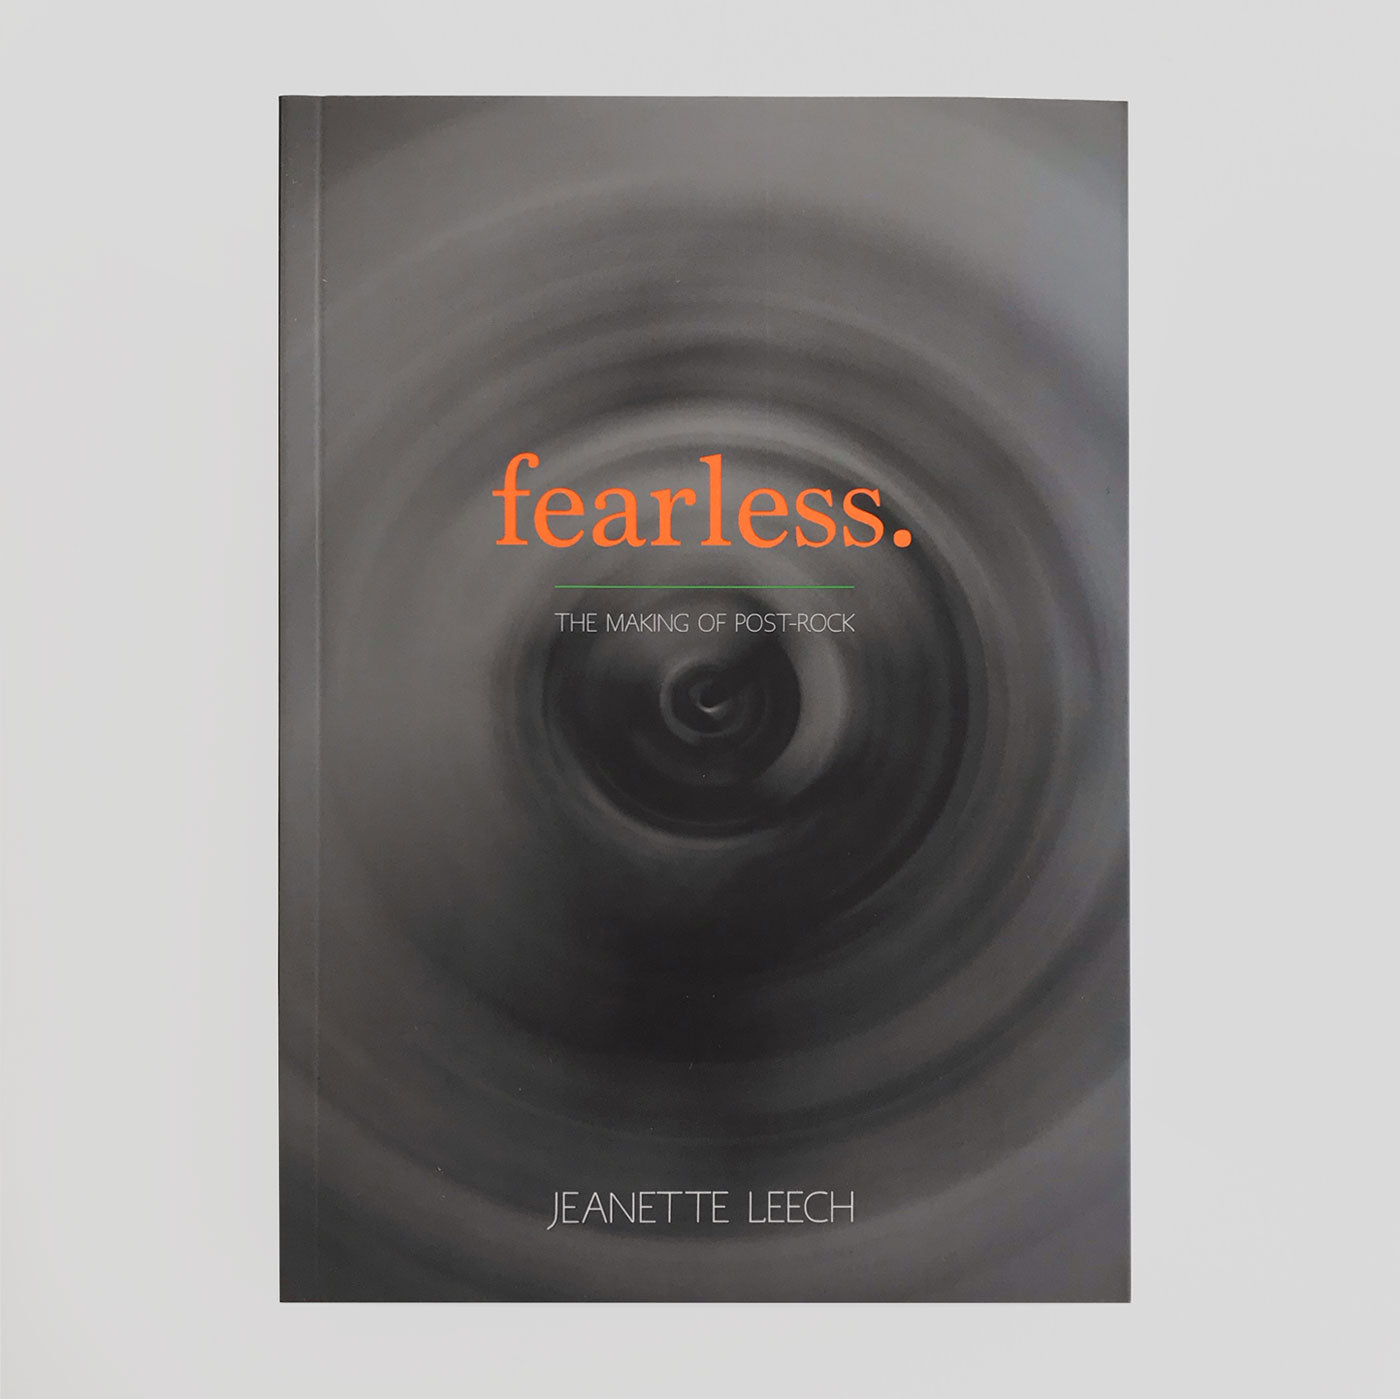 Fearless: The Making of Post-Rock | Jeanette Leech | Colours May Vary